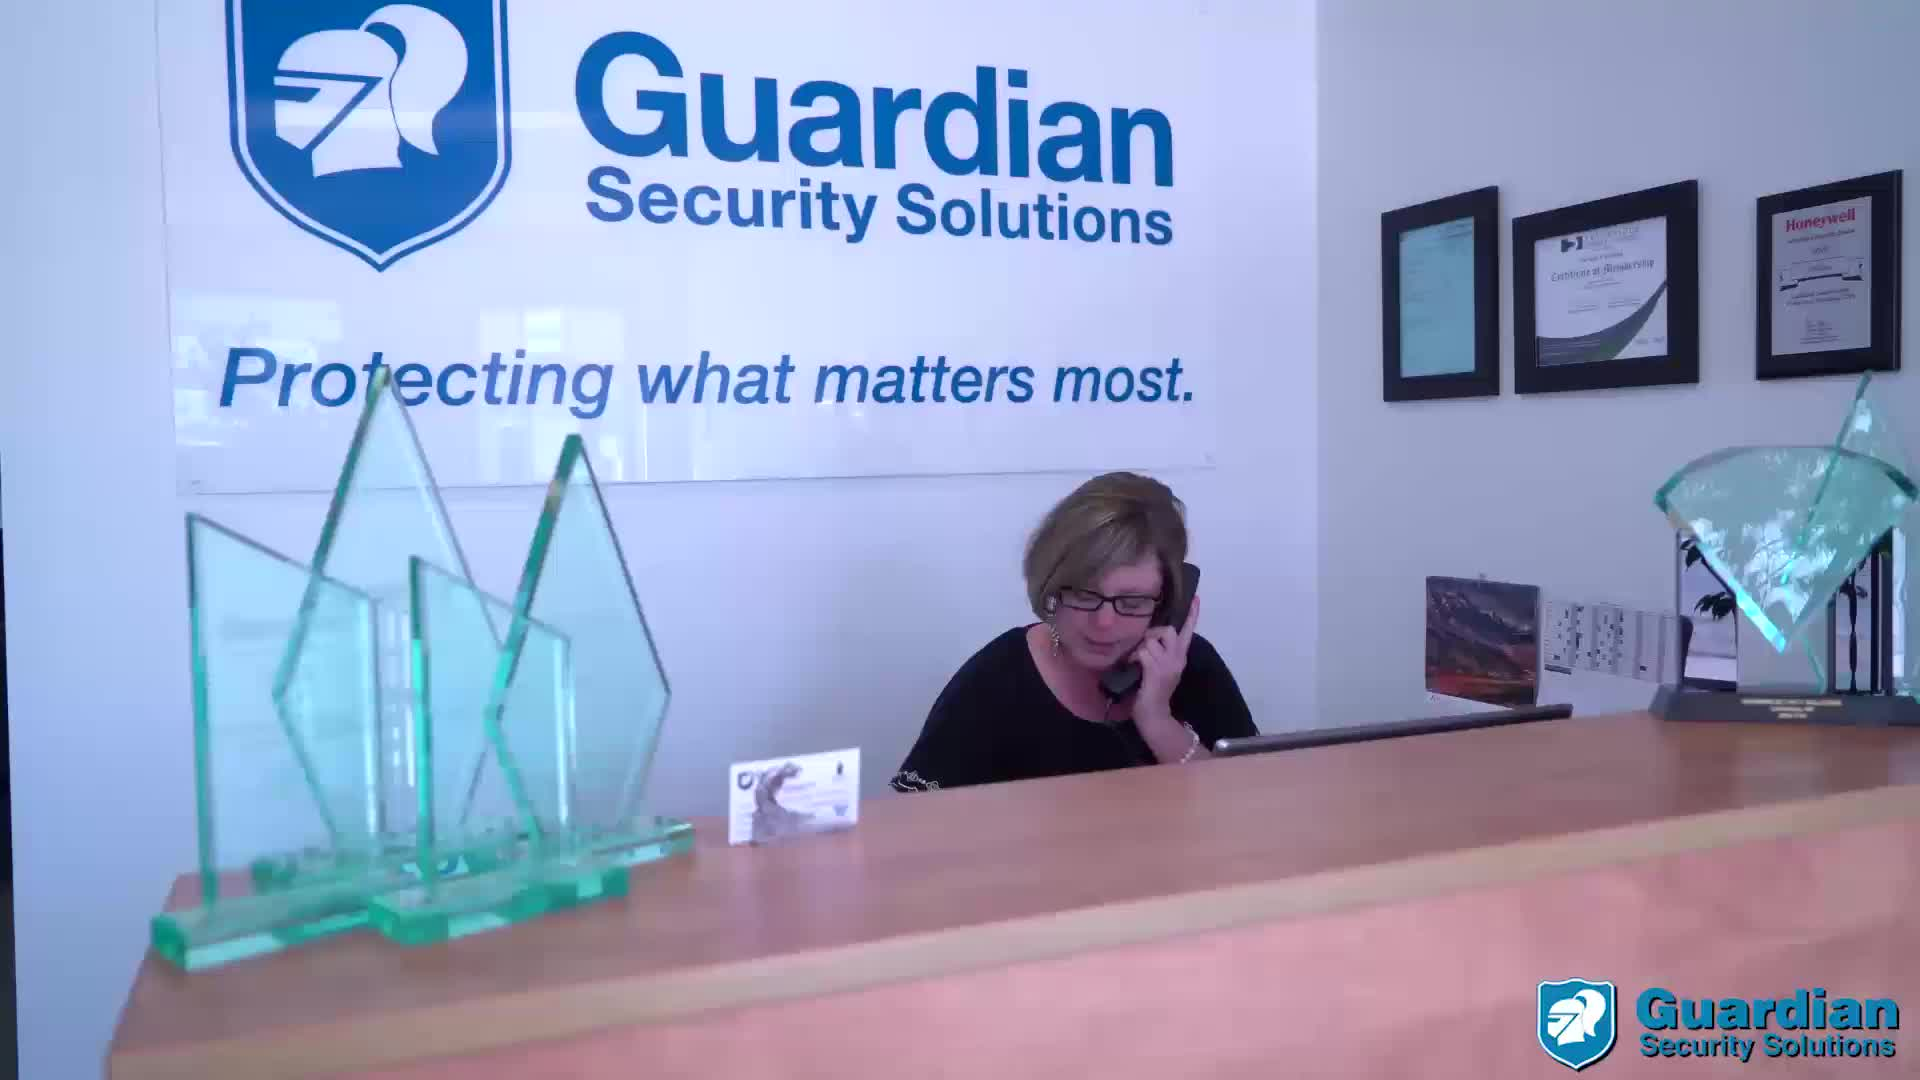 Guardian Security Solutions - Security Control Systems & Equipment - 403-233-7454